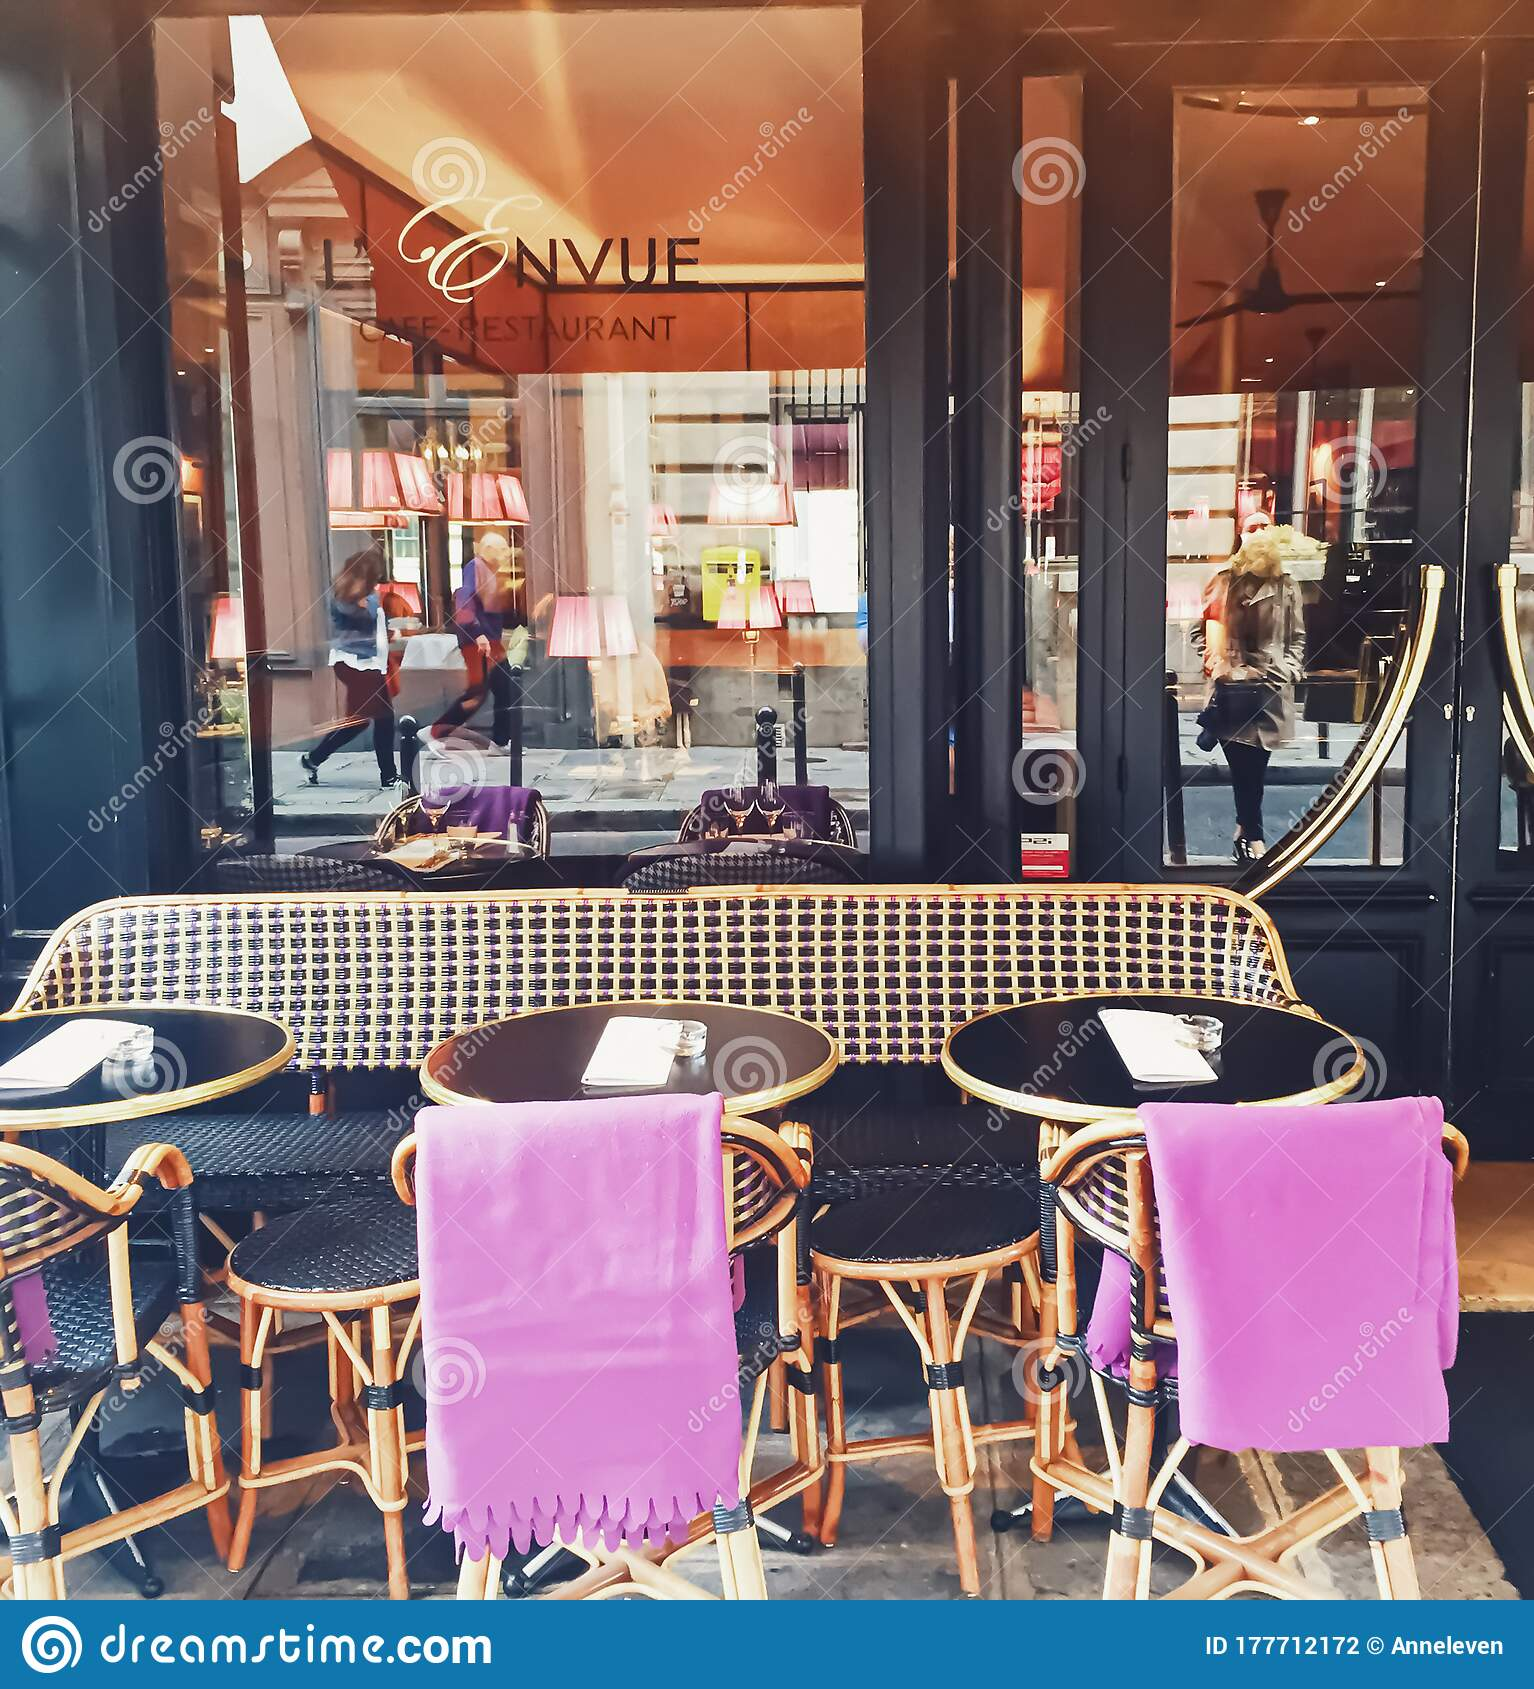 Parisian Cafe And Restaurant On Central Street Of Paris France Editorial Photography Image Of Exterior Architecture 177712172